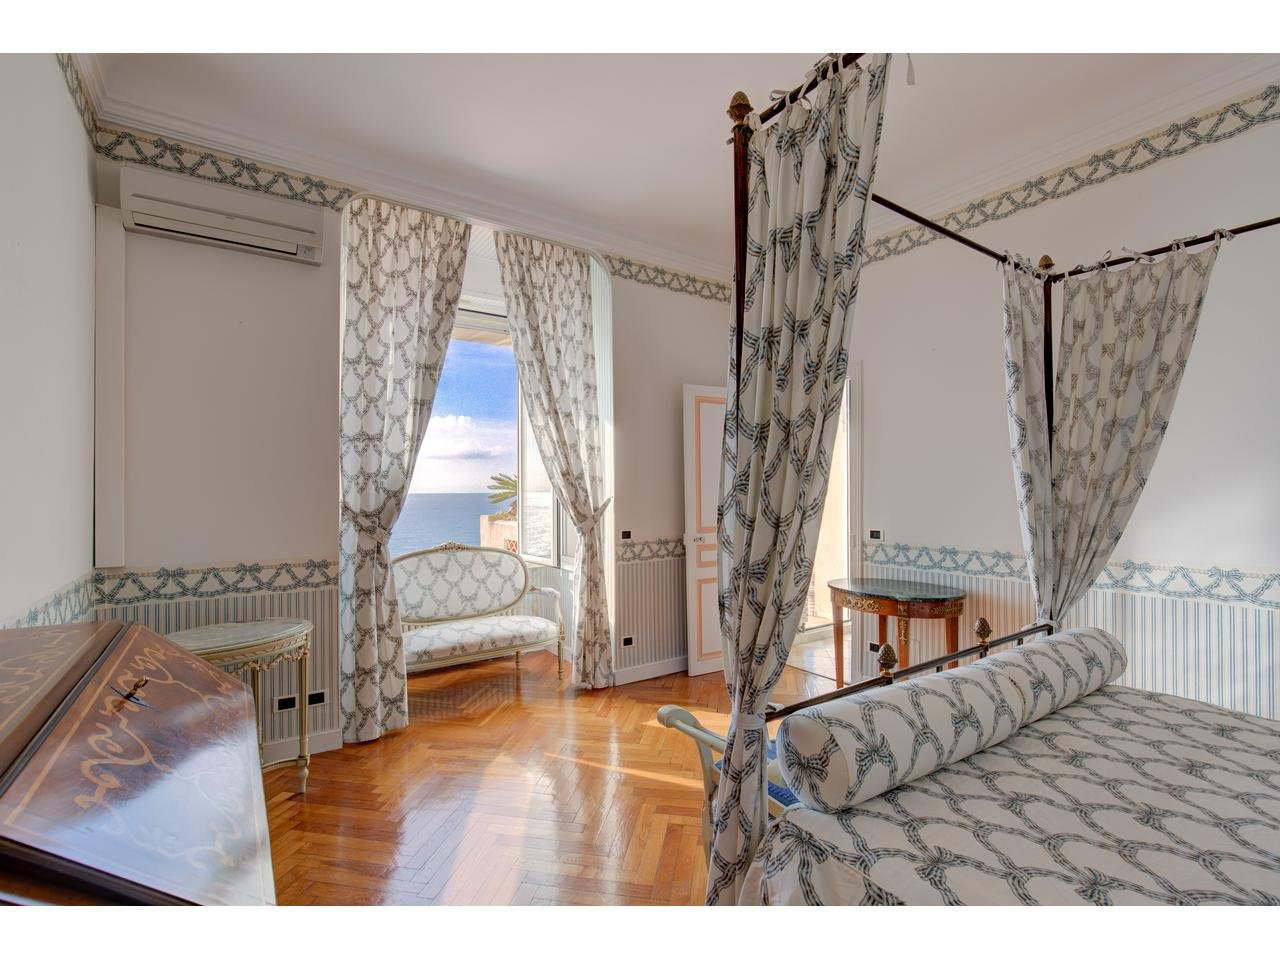 Maison  11 Rooms 350m2  for sale  6 600 000 €